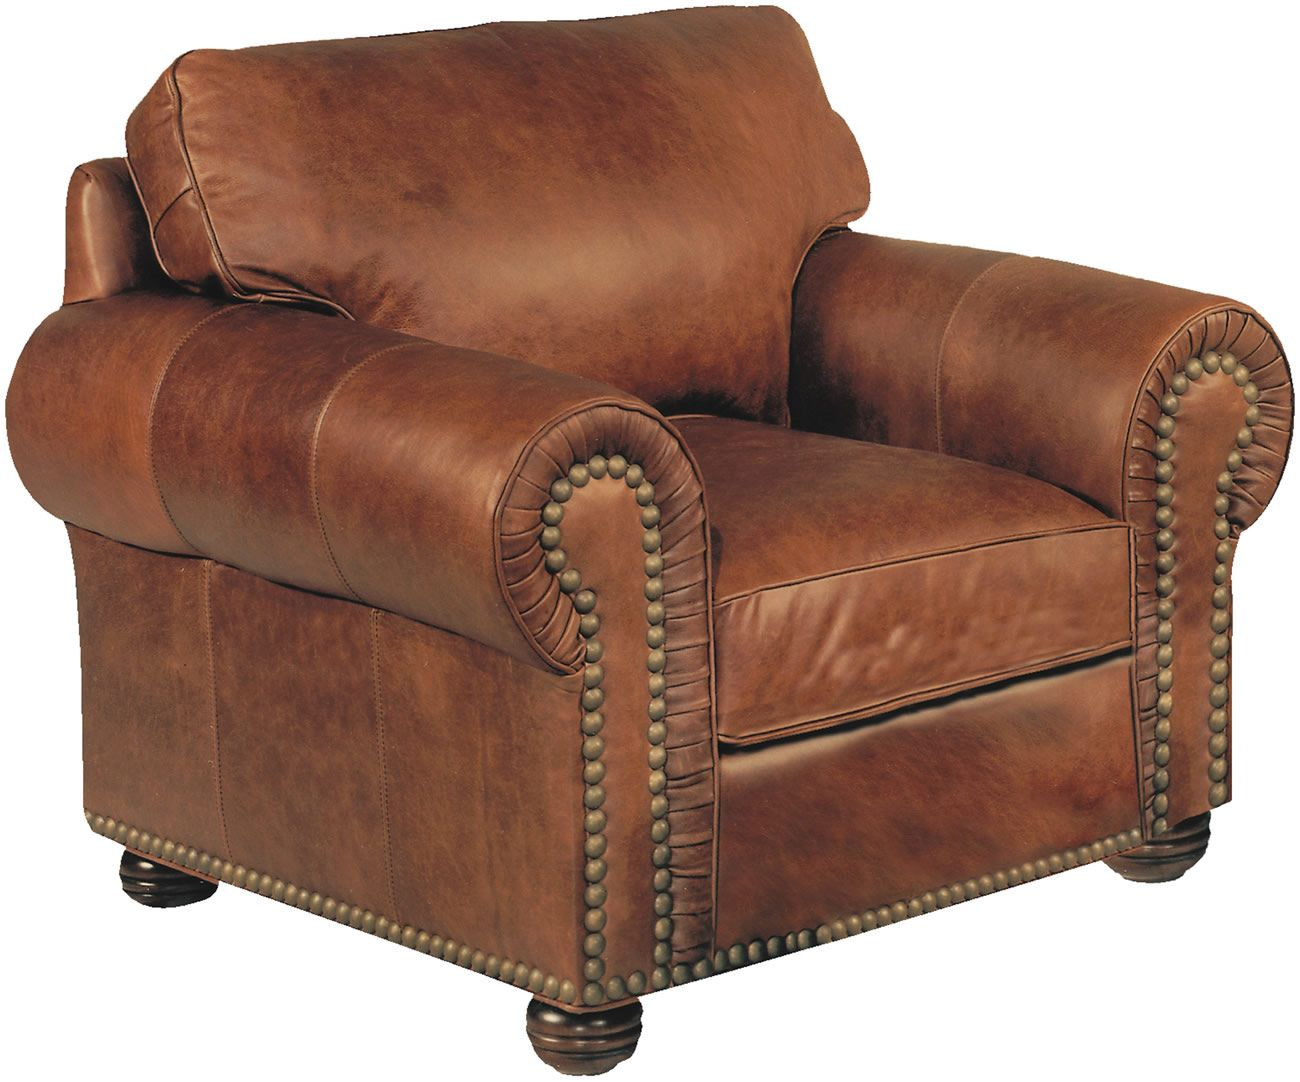 stickley furniture leather sofas sofa contemporary art design fest hutchinson chair with nailhead trim